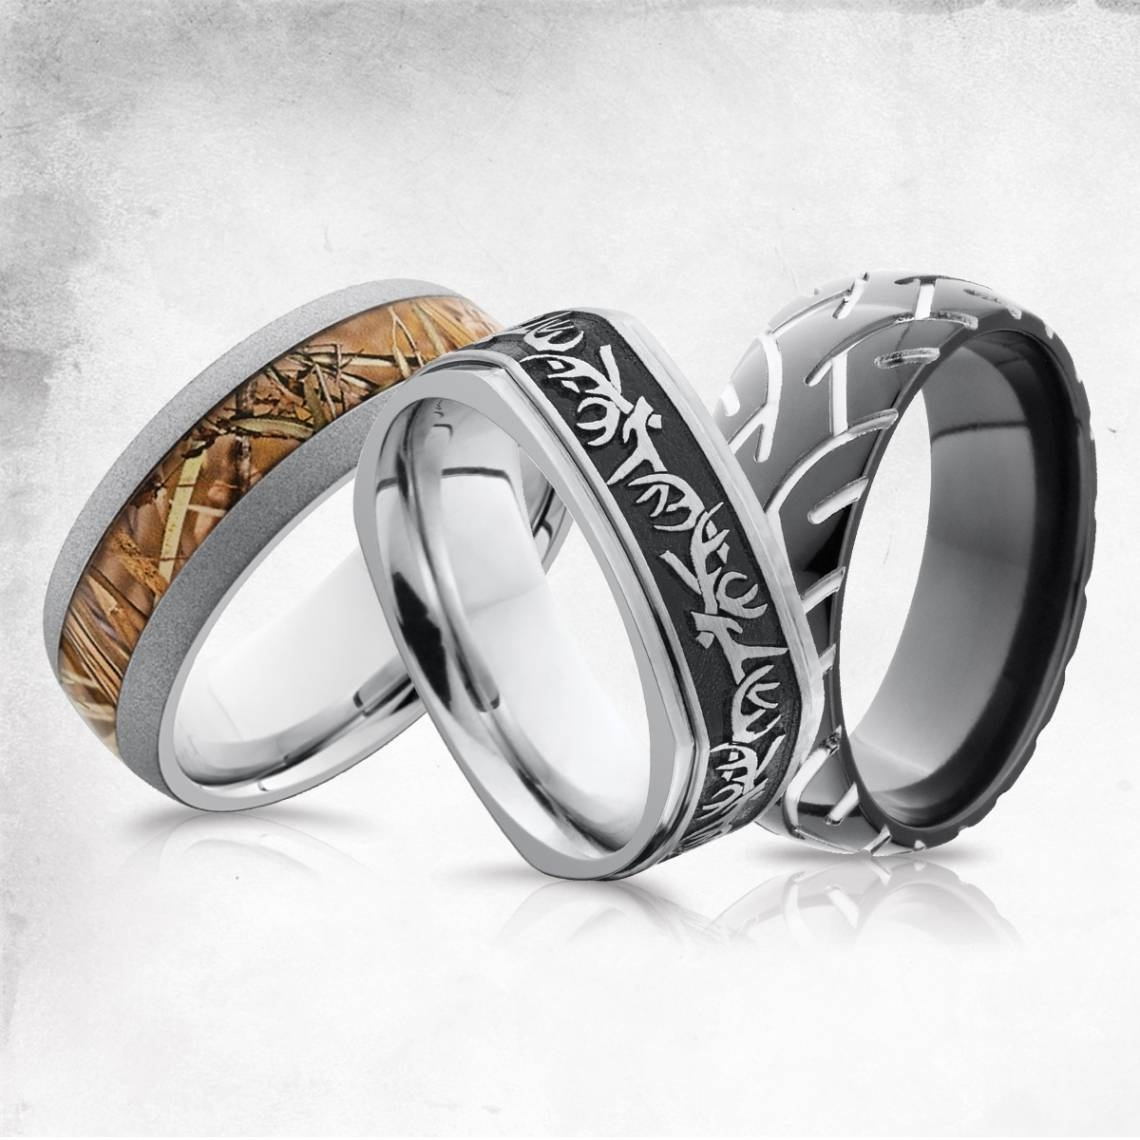 Hunting, Camo, And Tire Tracks Men's Wedding Bands – Men's Wedding With Regard To Outdoorsman Wedding Bands (View 11 of 15)